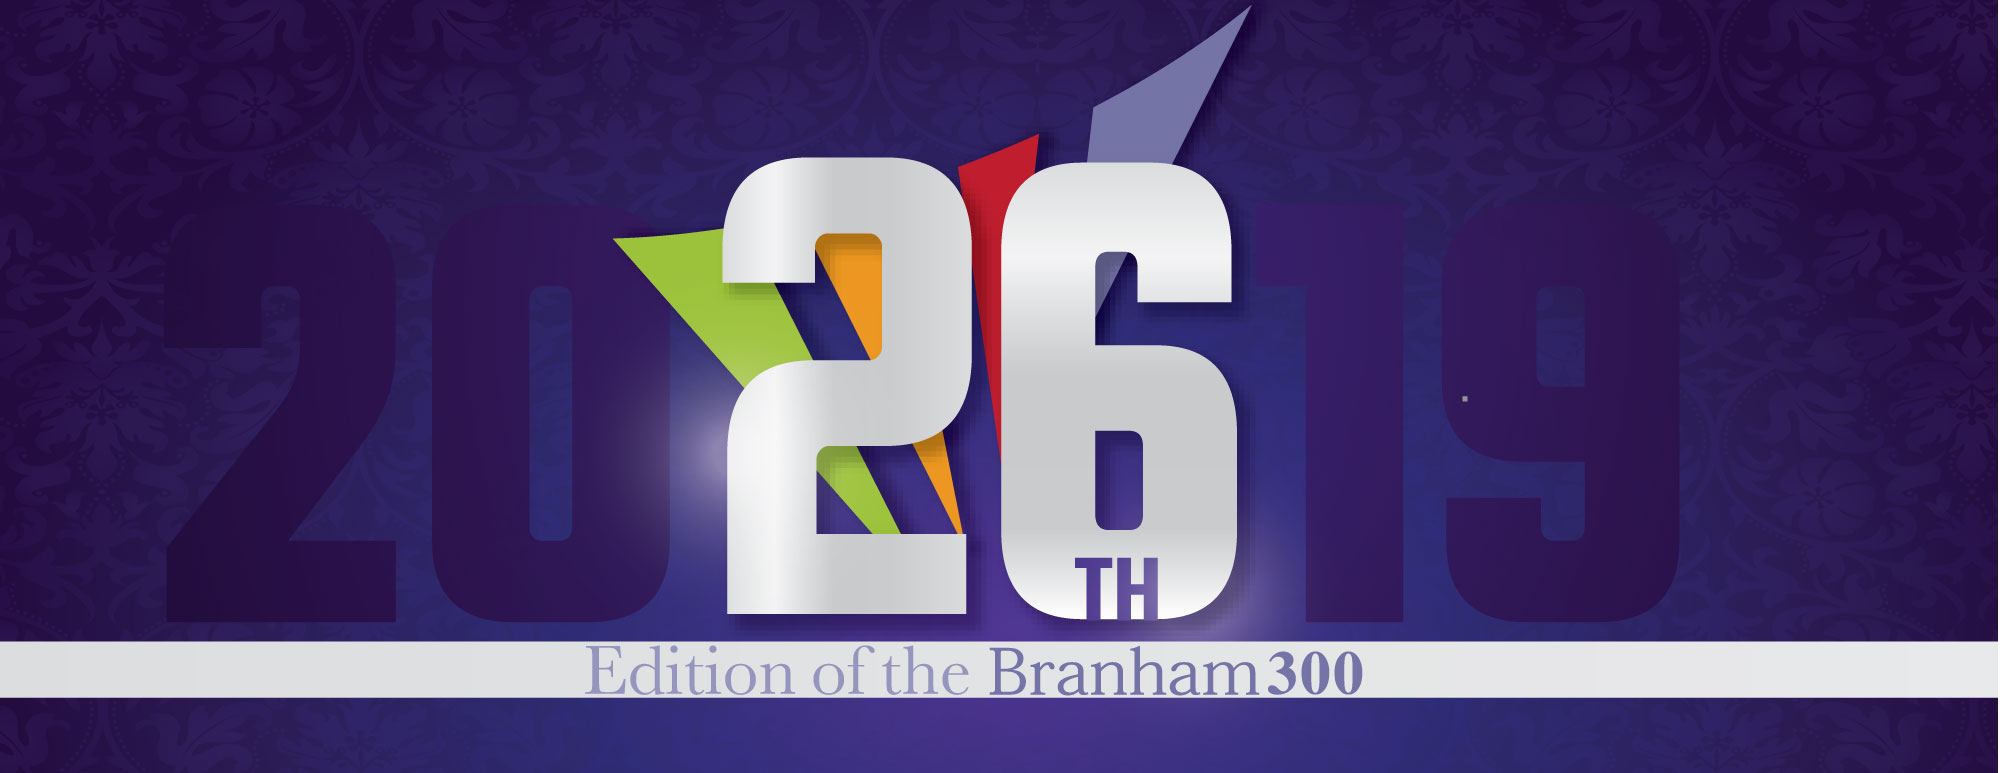 26th Edition of the Branham300